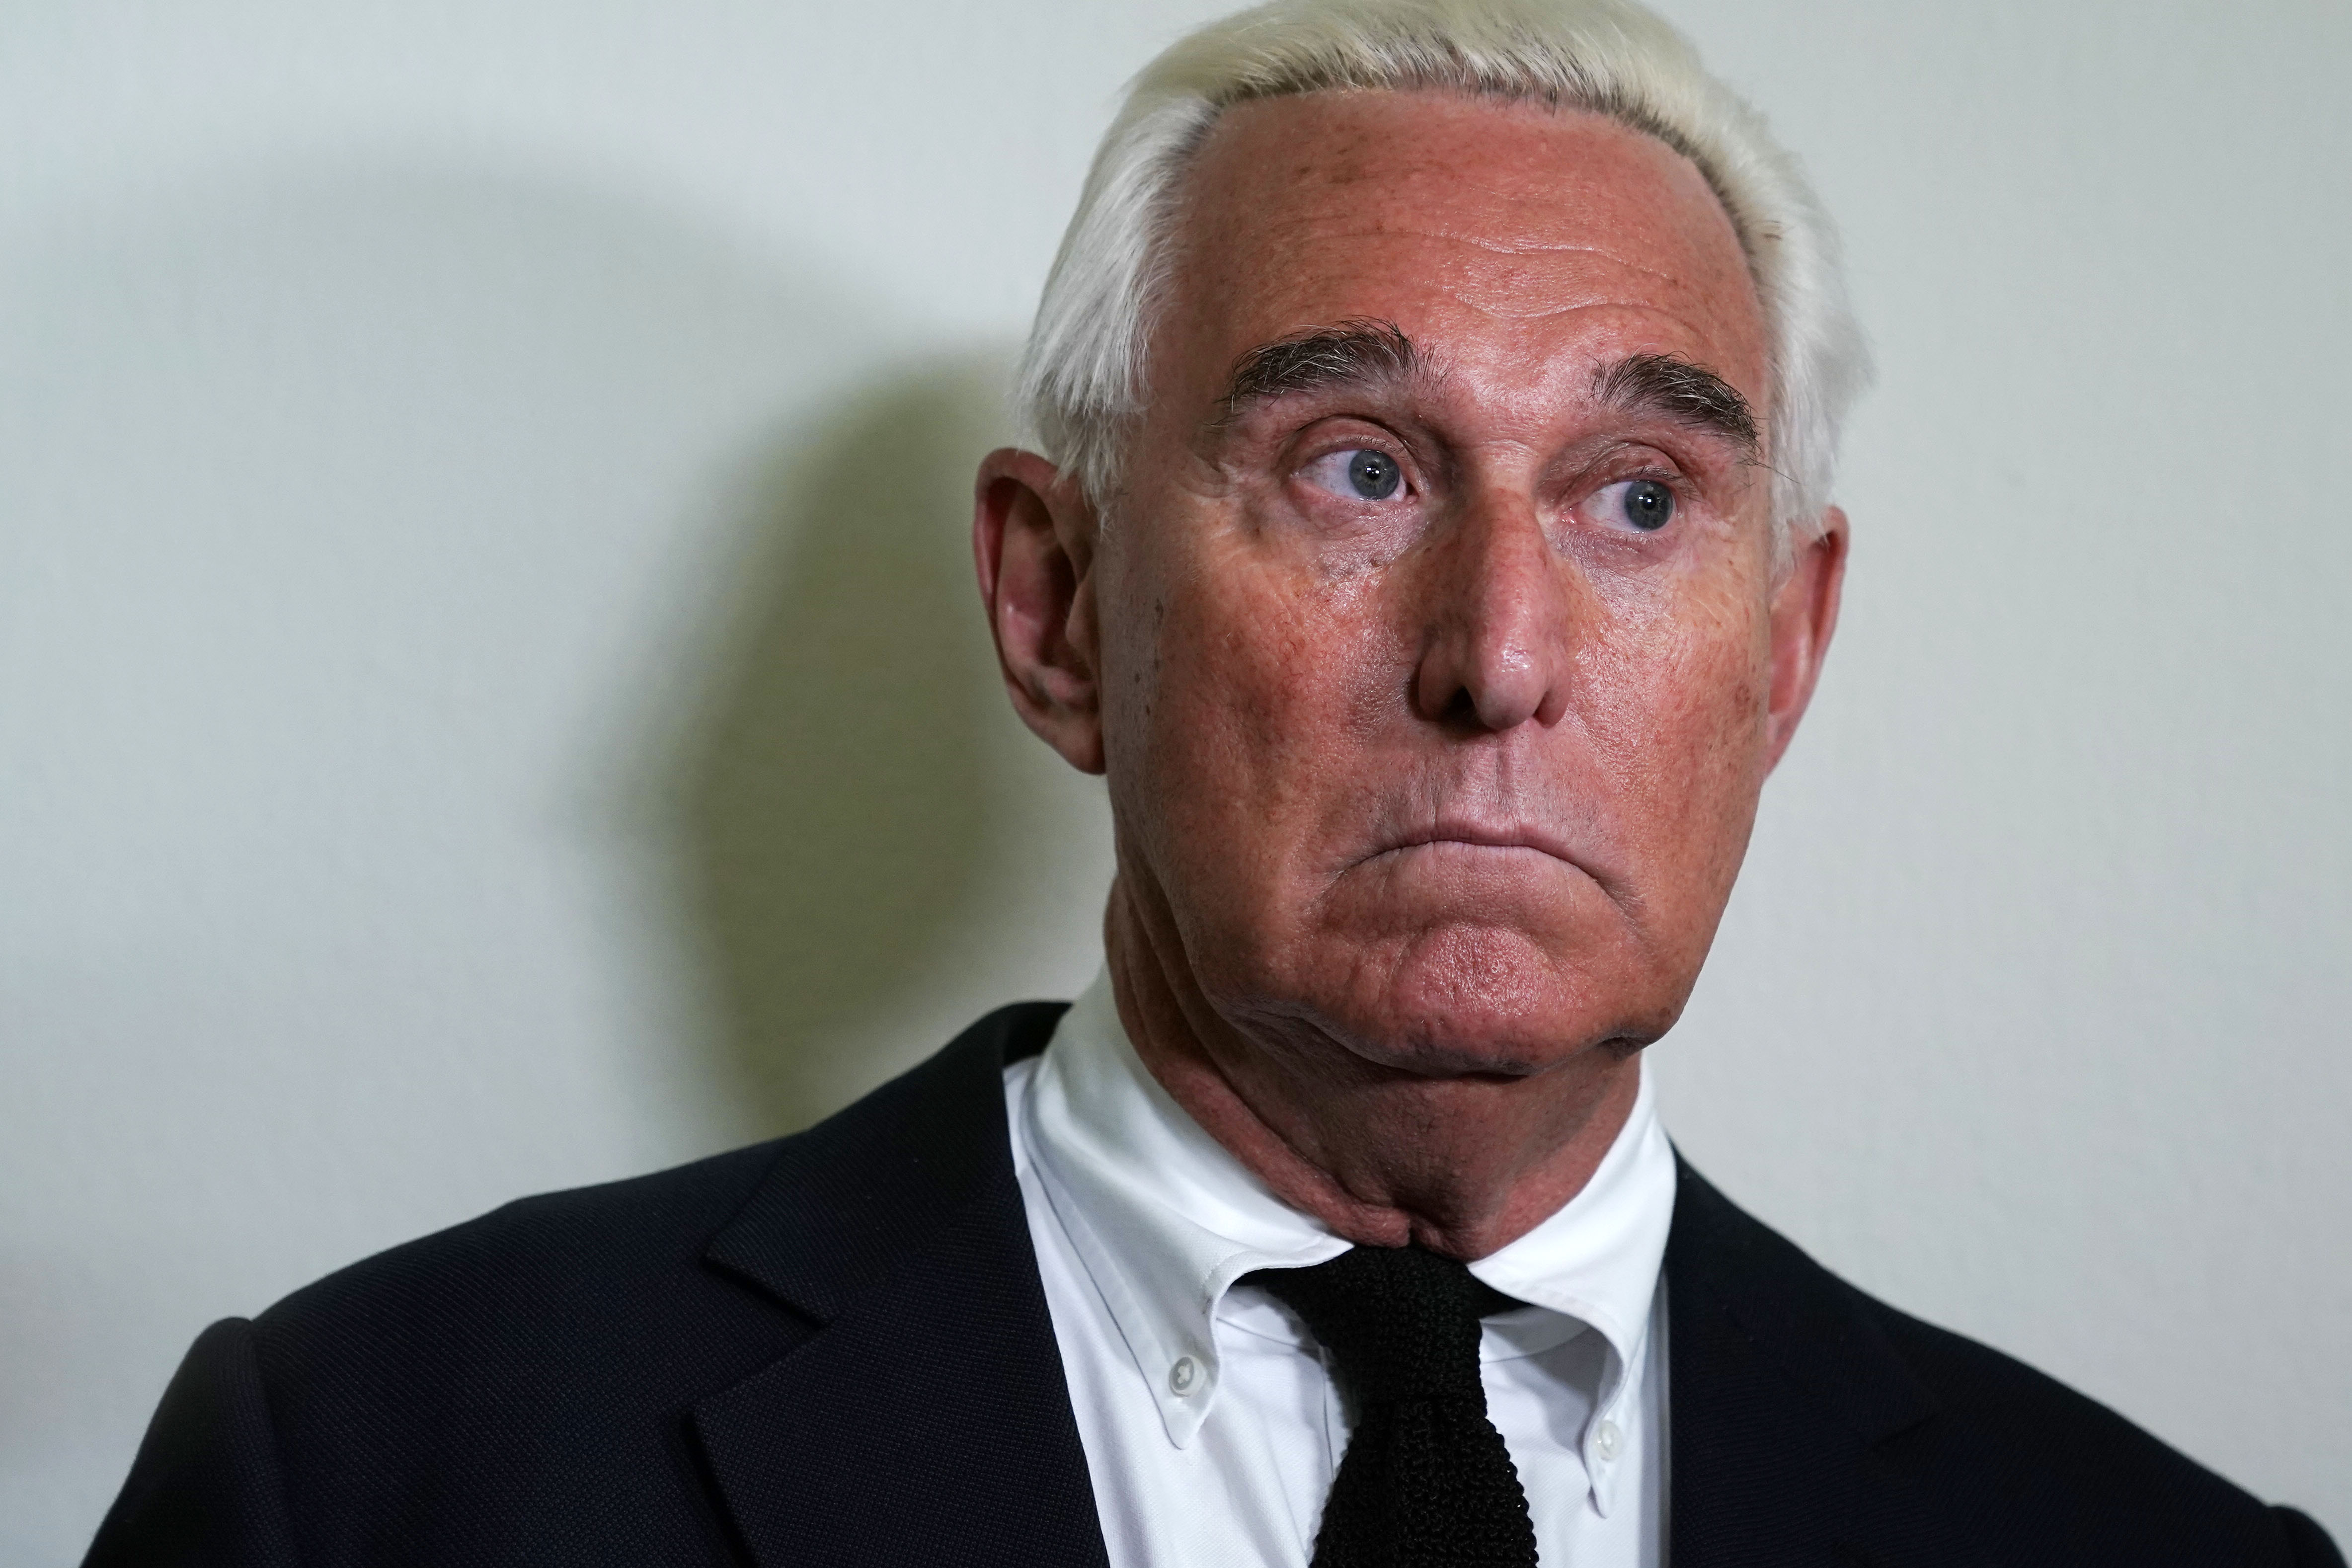 Roger Stone jailed for 40 months for impeding congressional probe